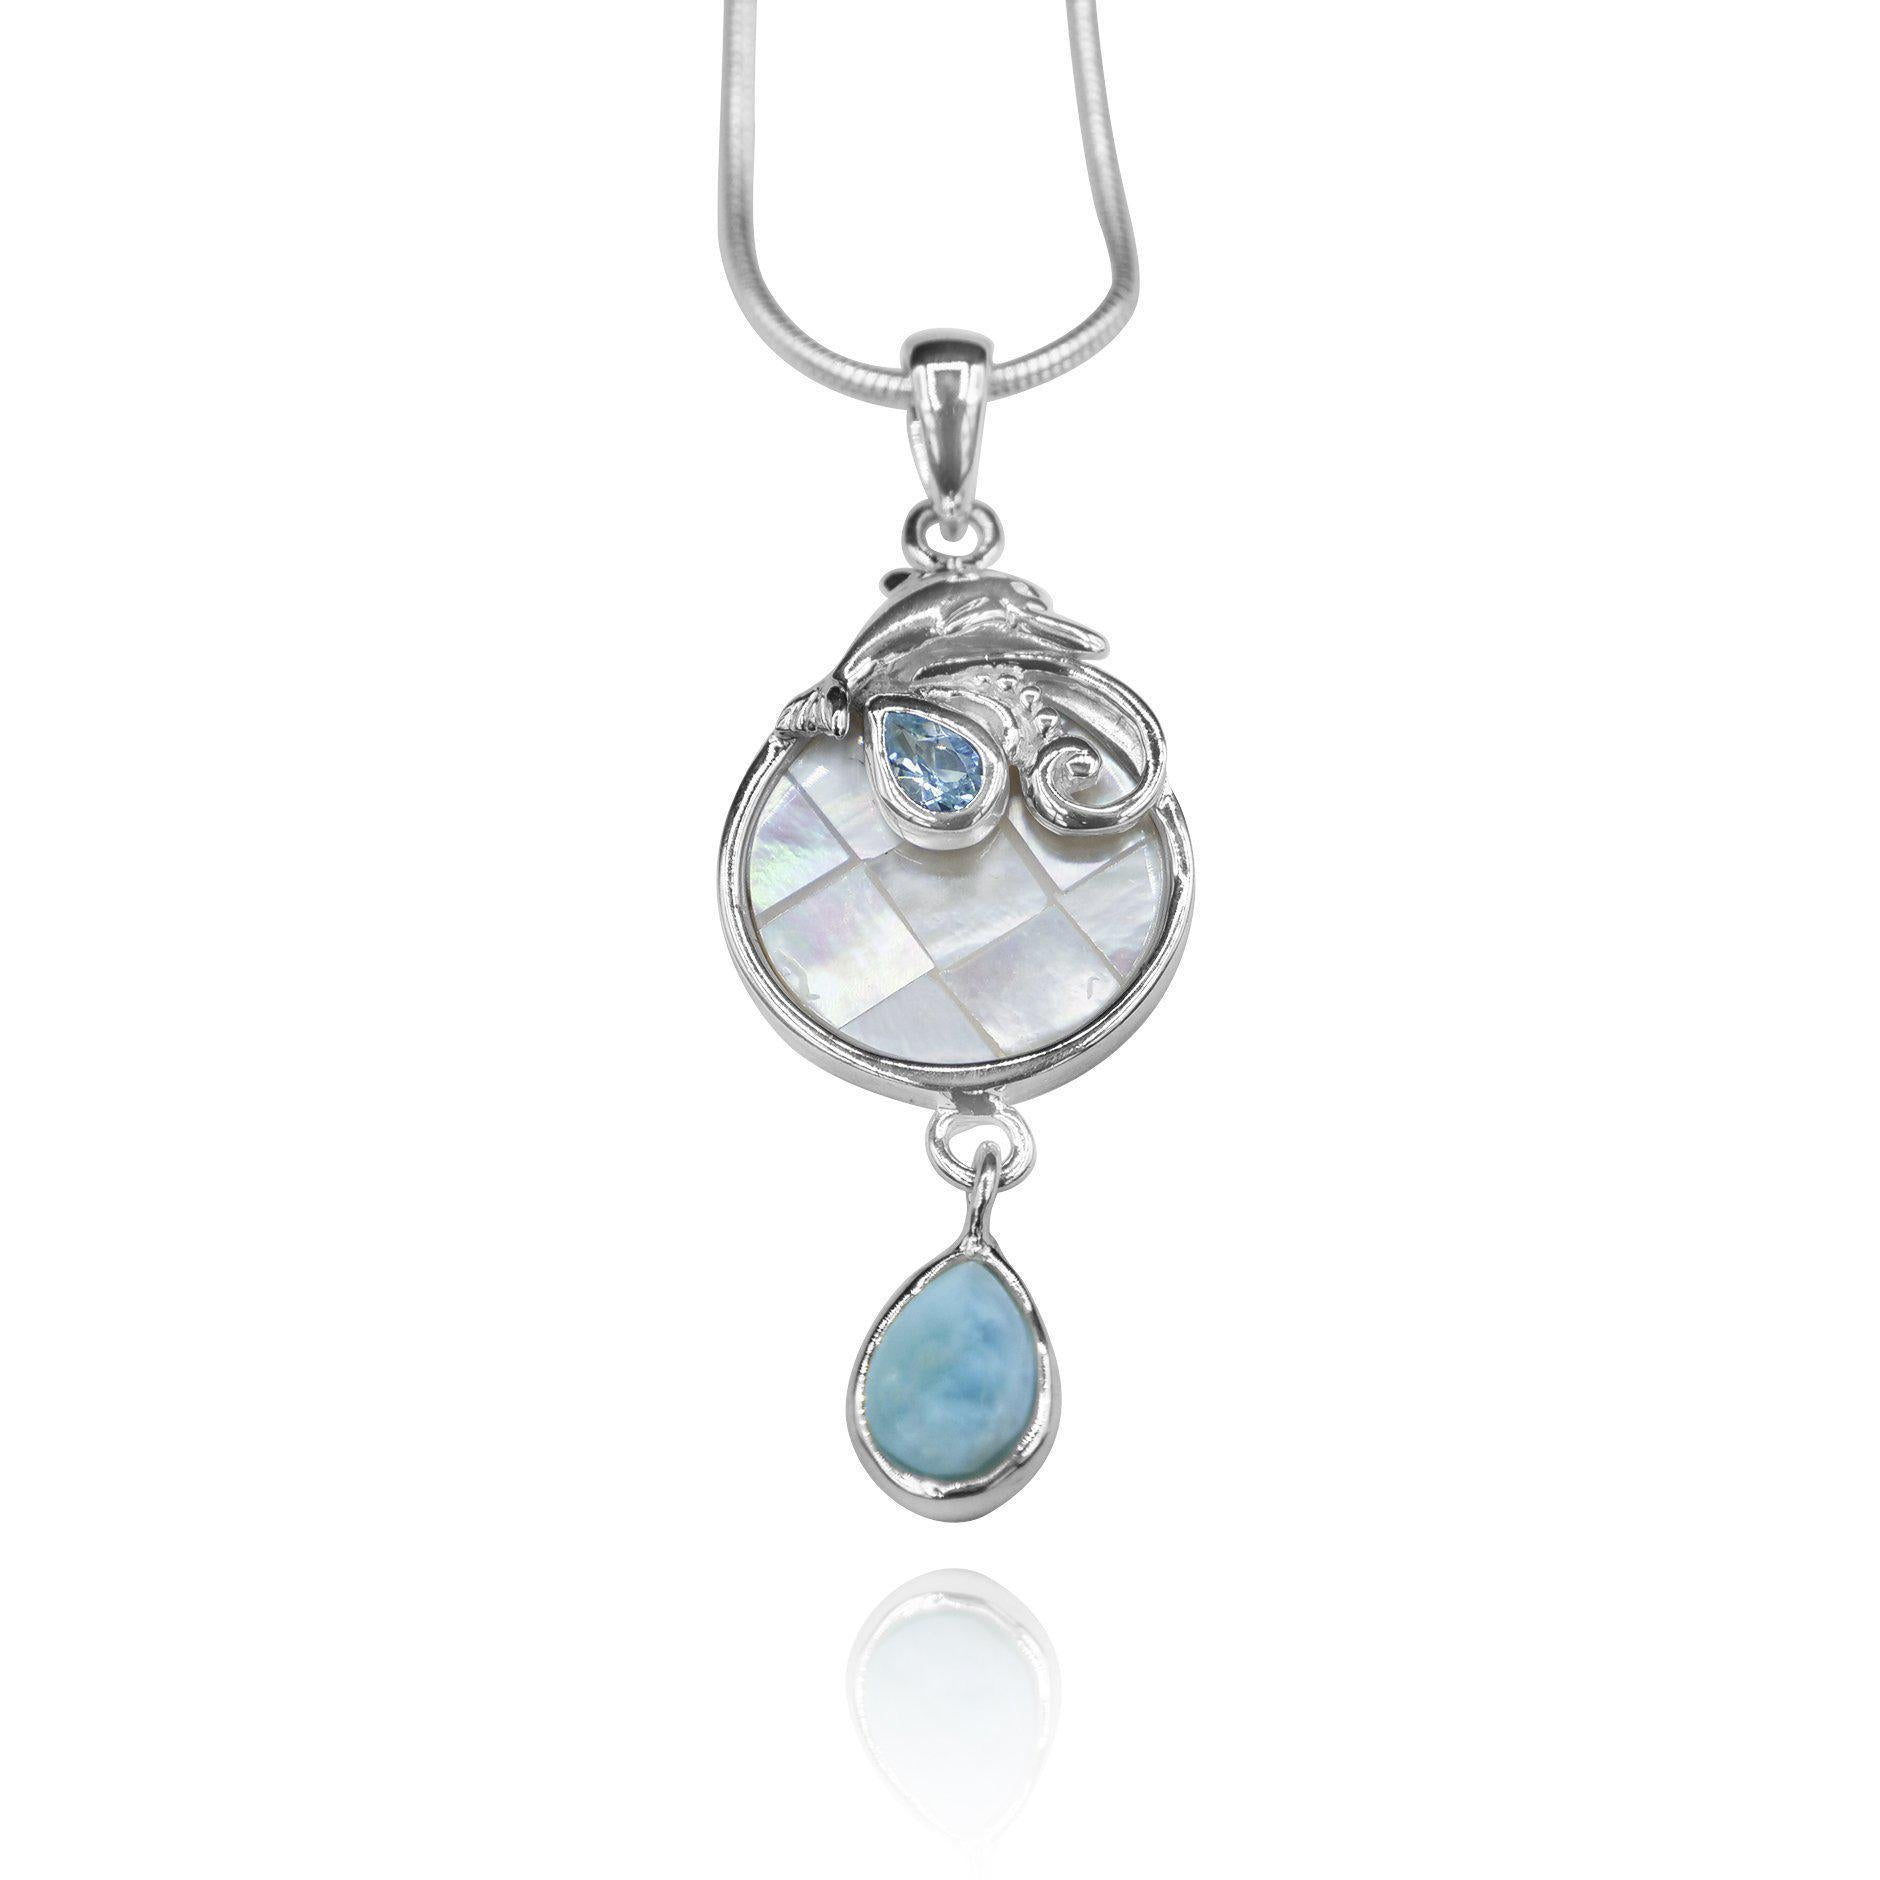 Dolphin Pendant Necklace with Swiss Blue Topaz, Mother of Pearl Mosaic and Larimar Stone